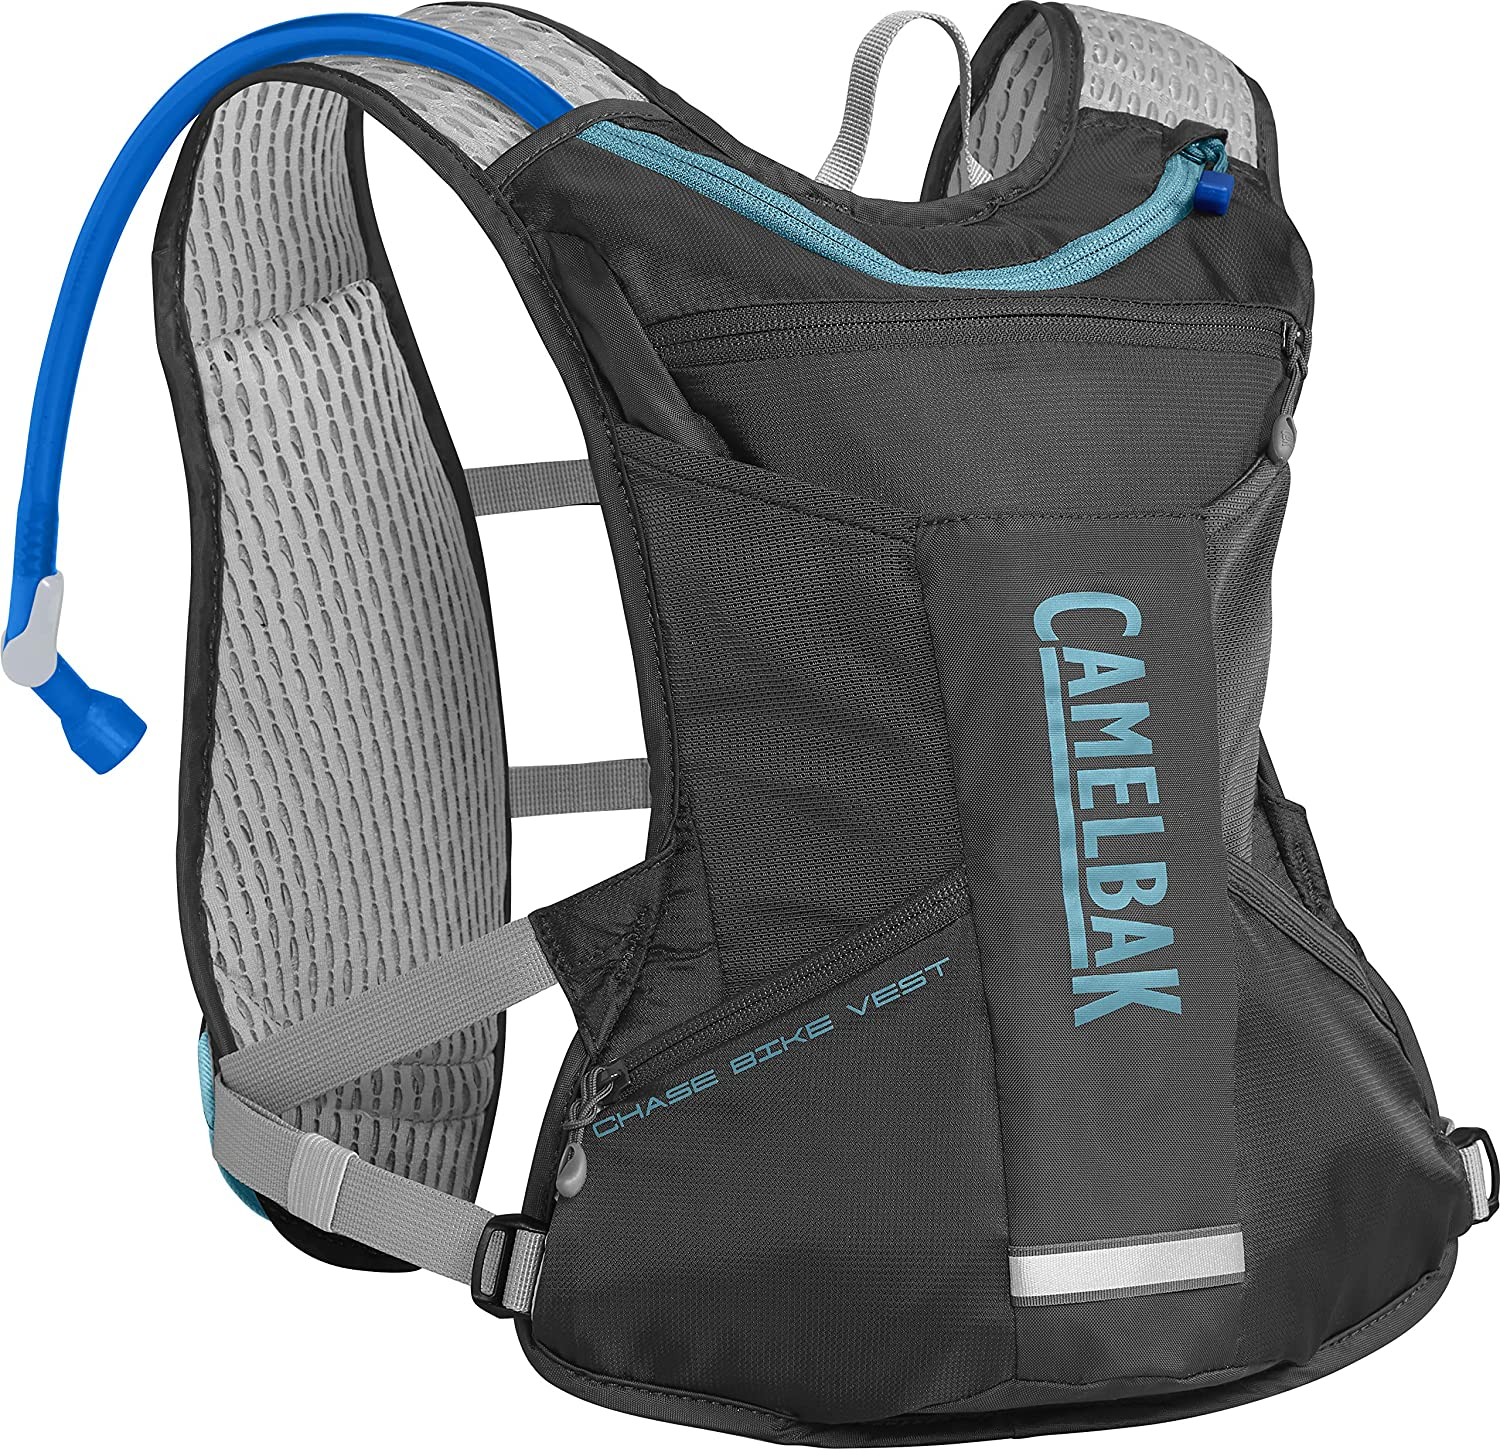 CamelBak Chase Women s Bike Hydration Vest – Engineered for Women – Faster Water Flow Rate – Front Harness Pockets – 3D Vent Mesh – Dual Adjustable Sternum Straps – 50 Ounce